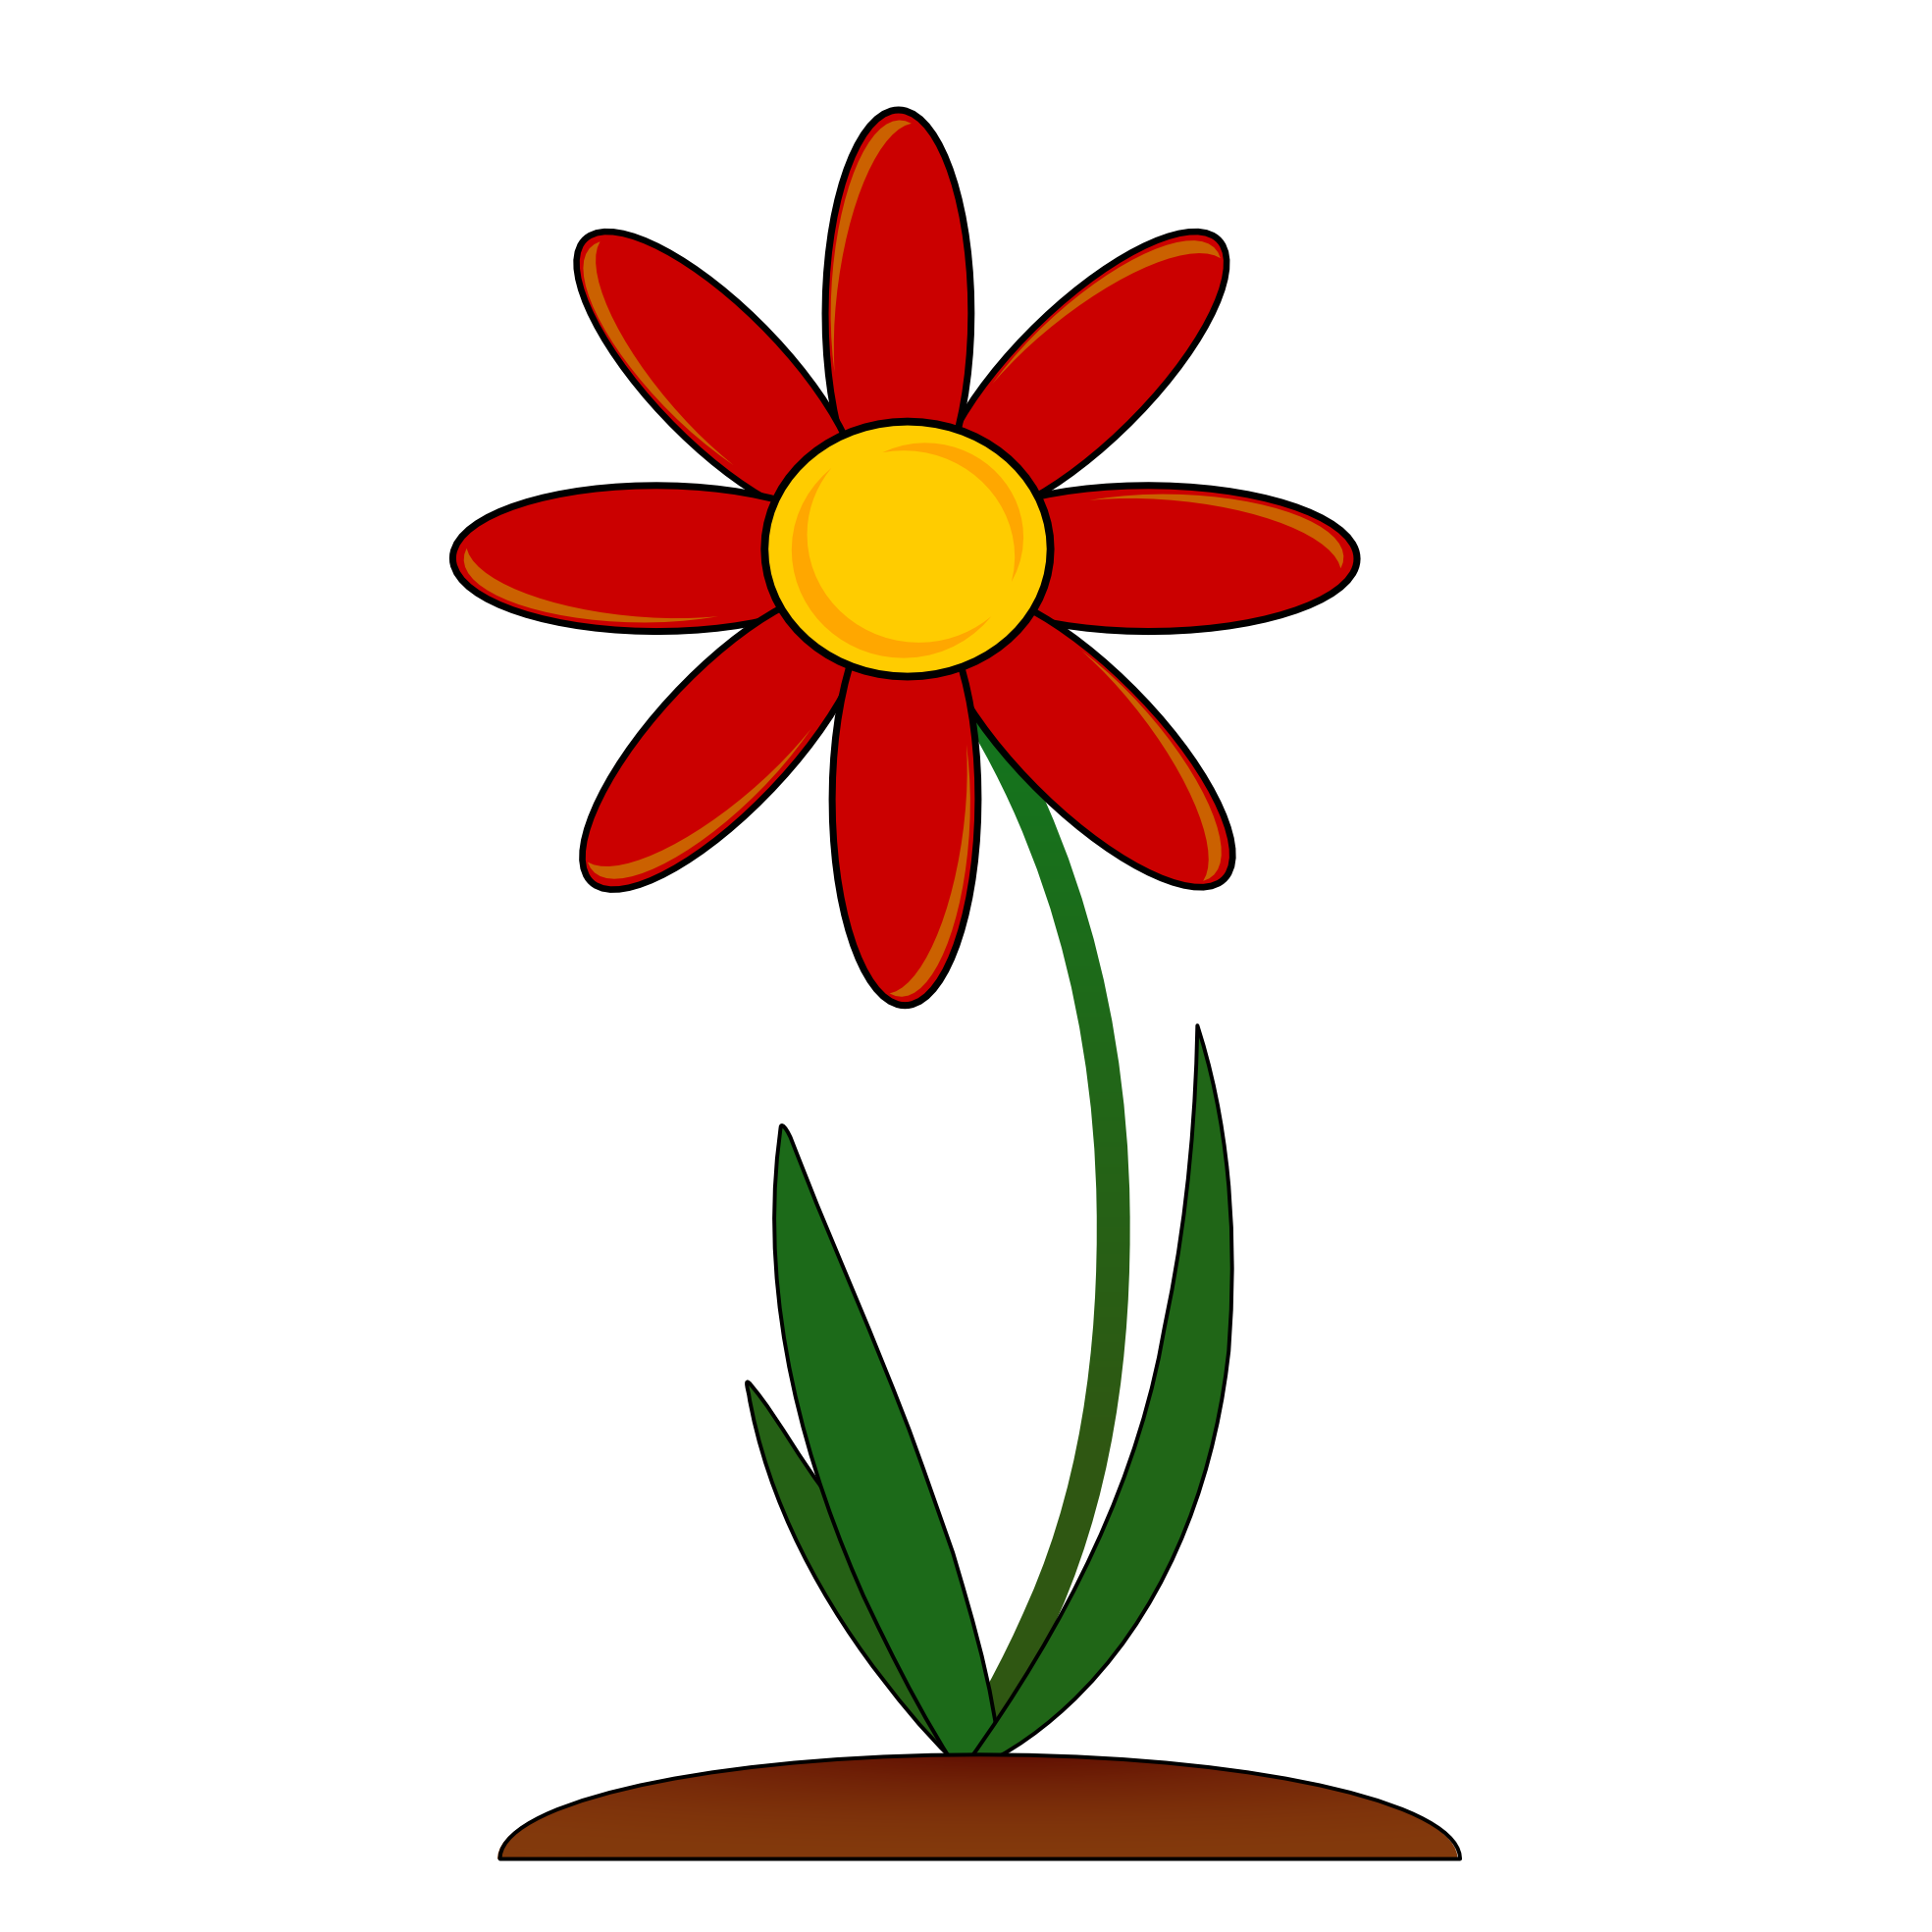 image freeuse Red clip art png. Clipart flower border